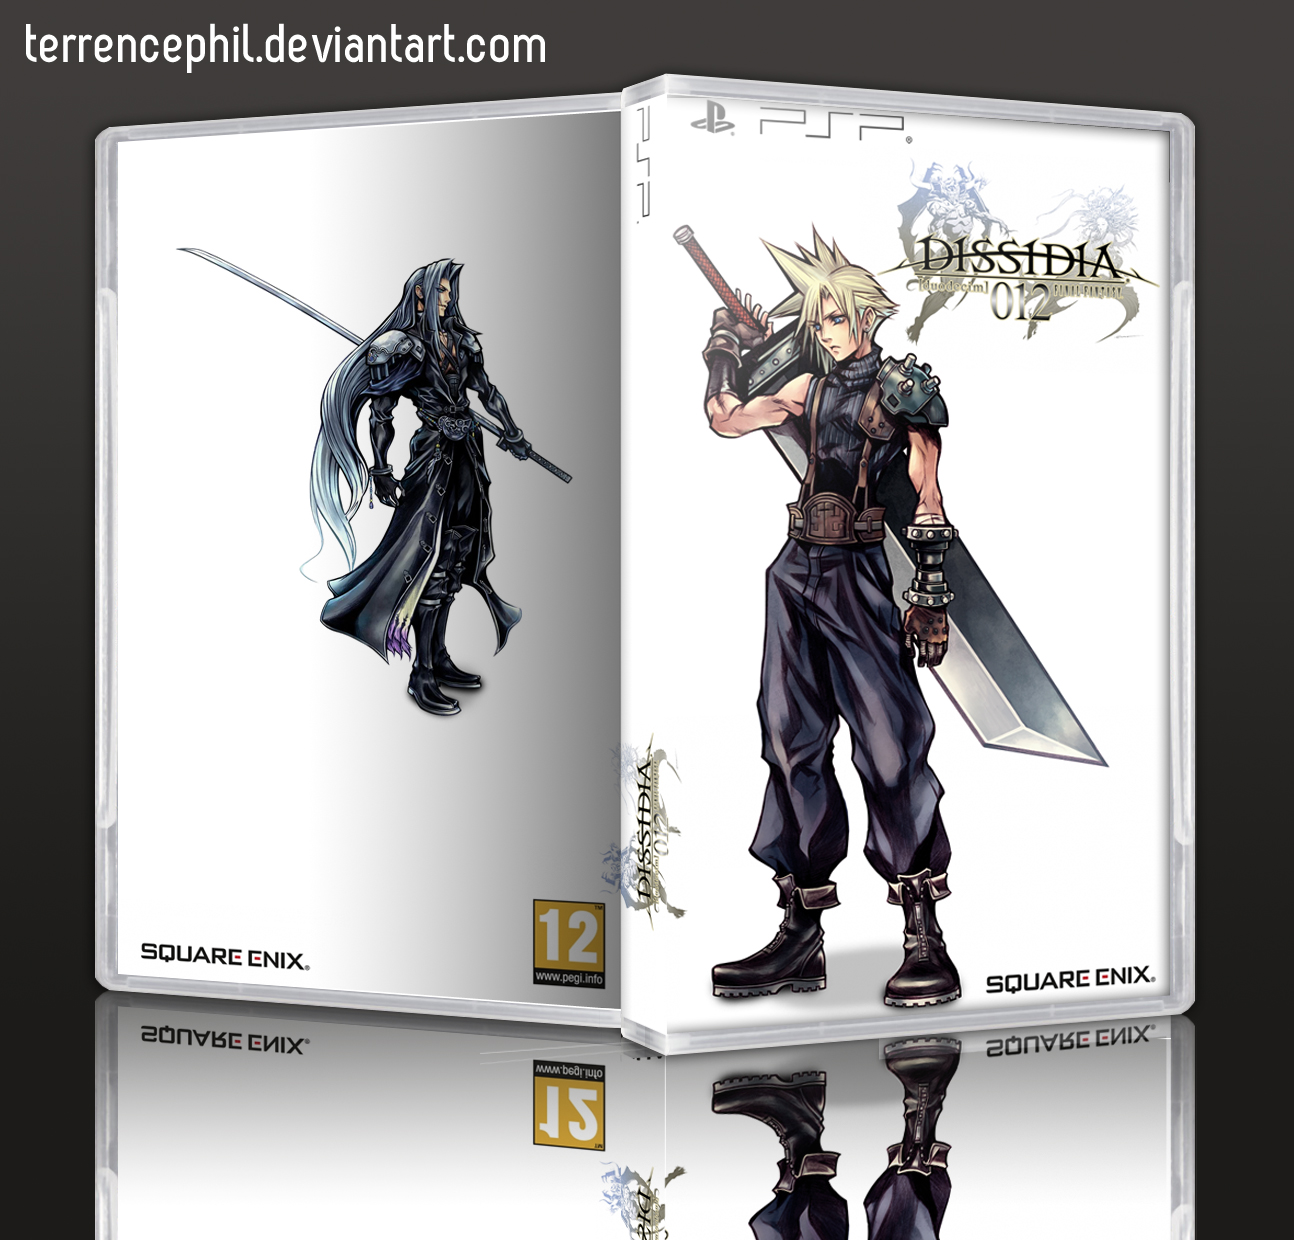 Final Fantasy Psp Box Art